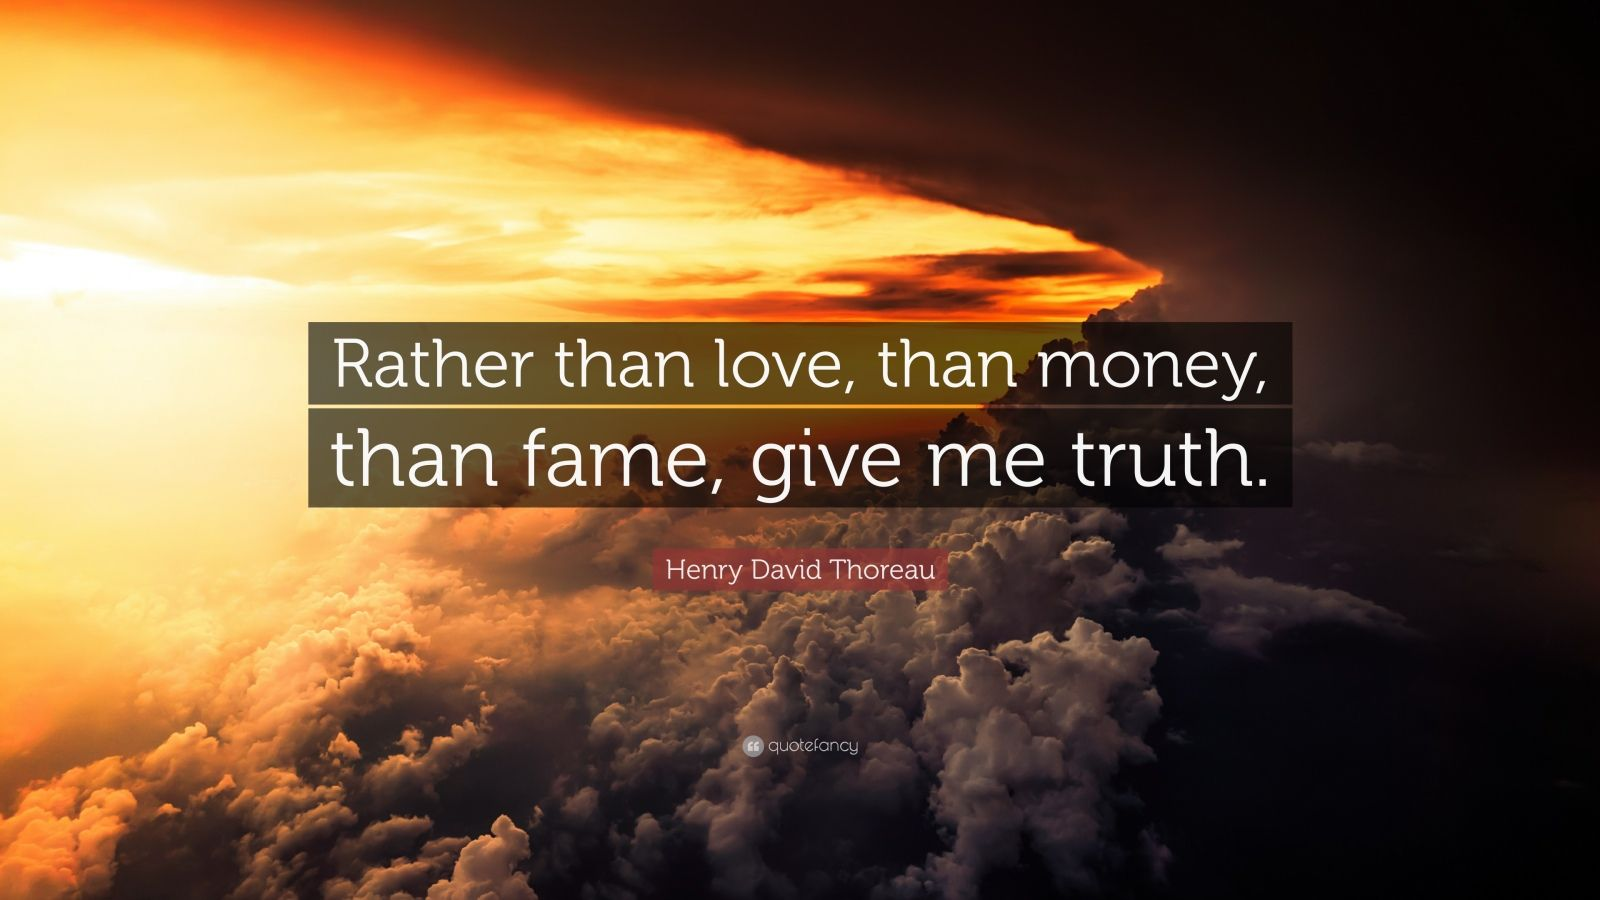 Motivational Life Quotes Wallpapers Henry David Thoreau Quote Rather Than Love Than Money